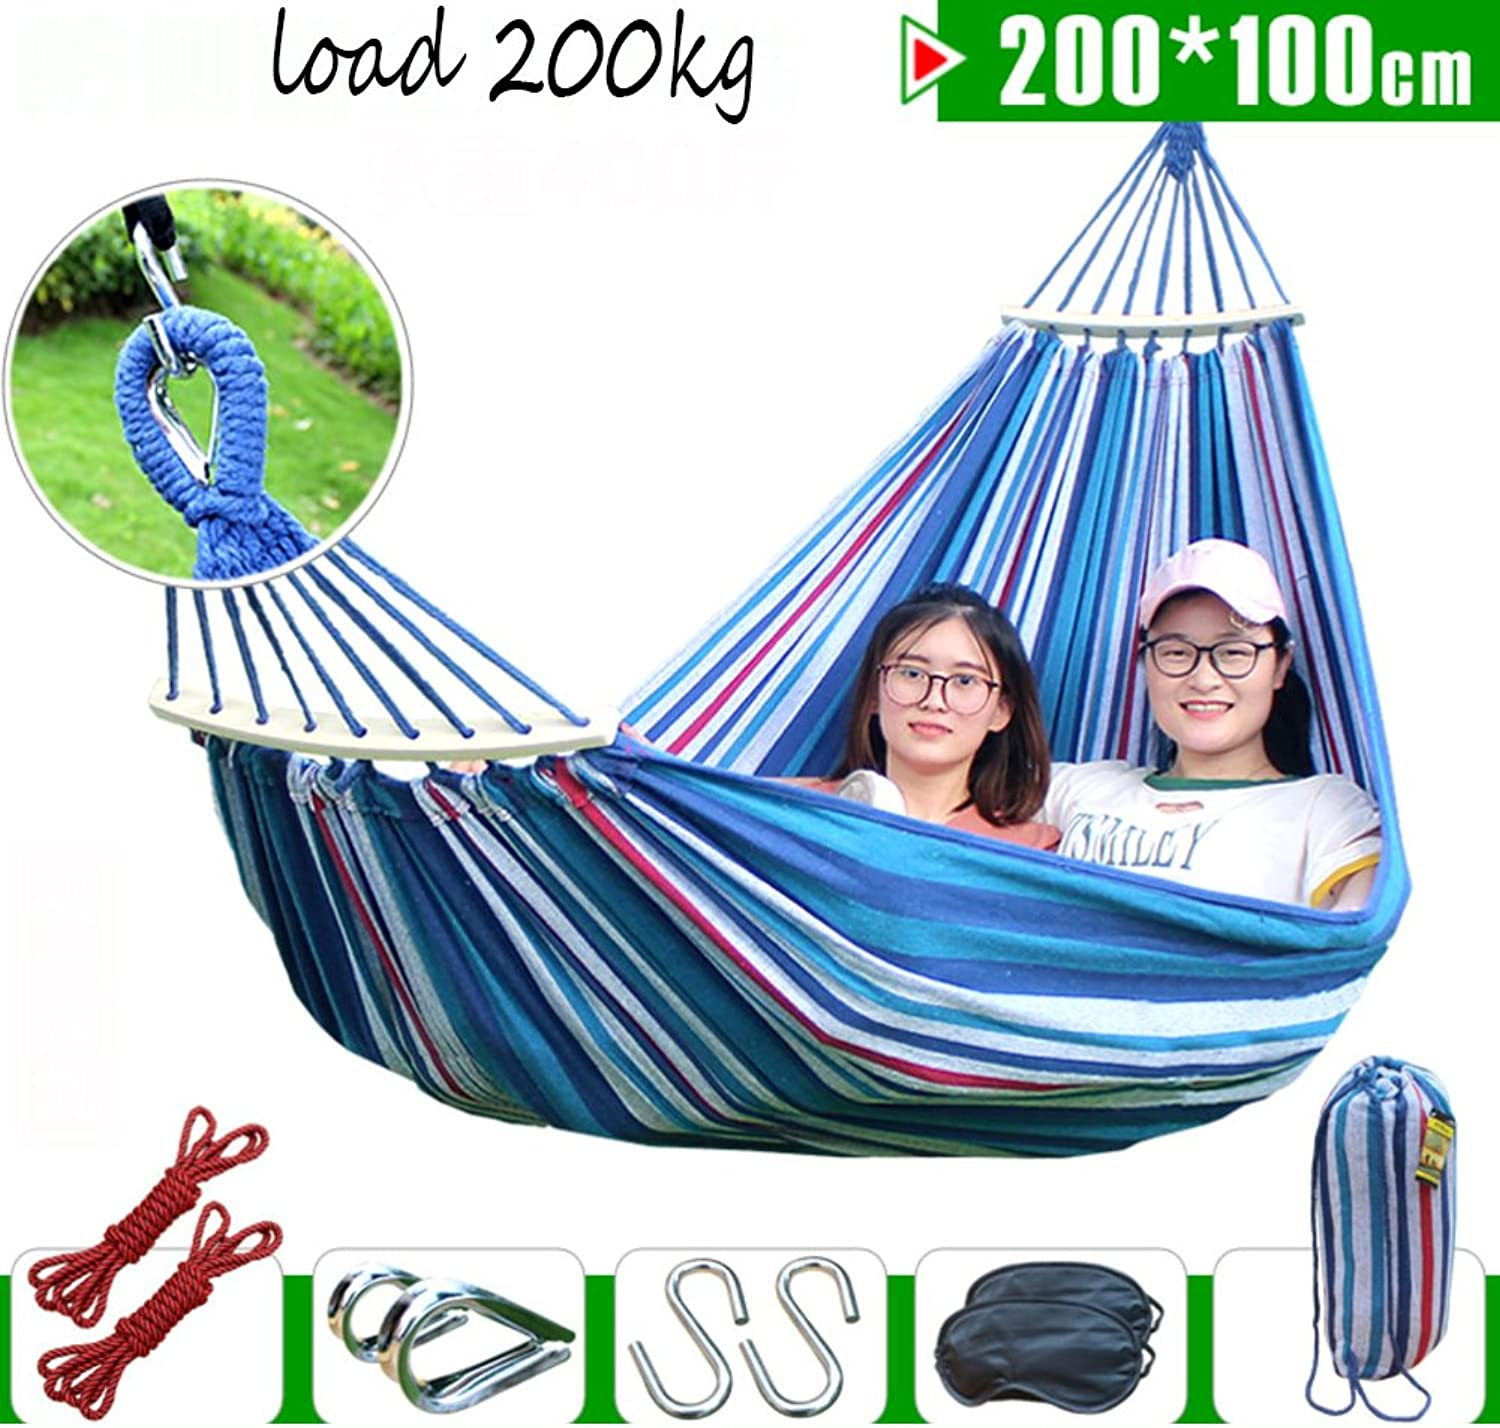 L&J Chromatic Stripe Hammock,Outdoor Camping Hammocks Single Double Thick Canvas Breathable Swing Bed AntiFade FastDrying Hammock Camping Garden